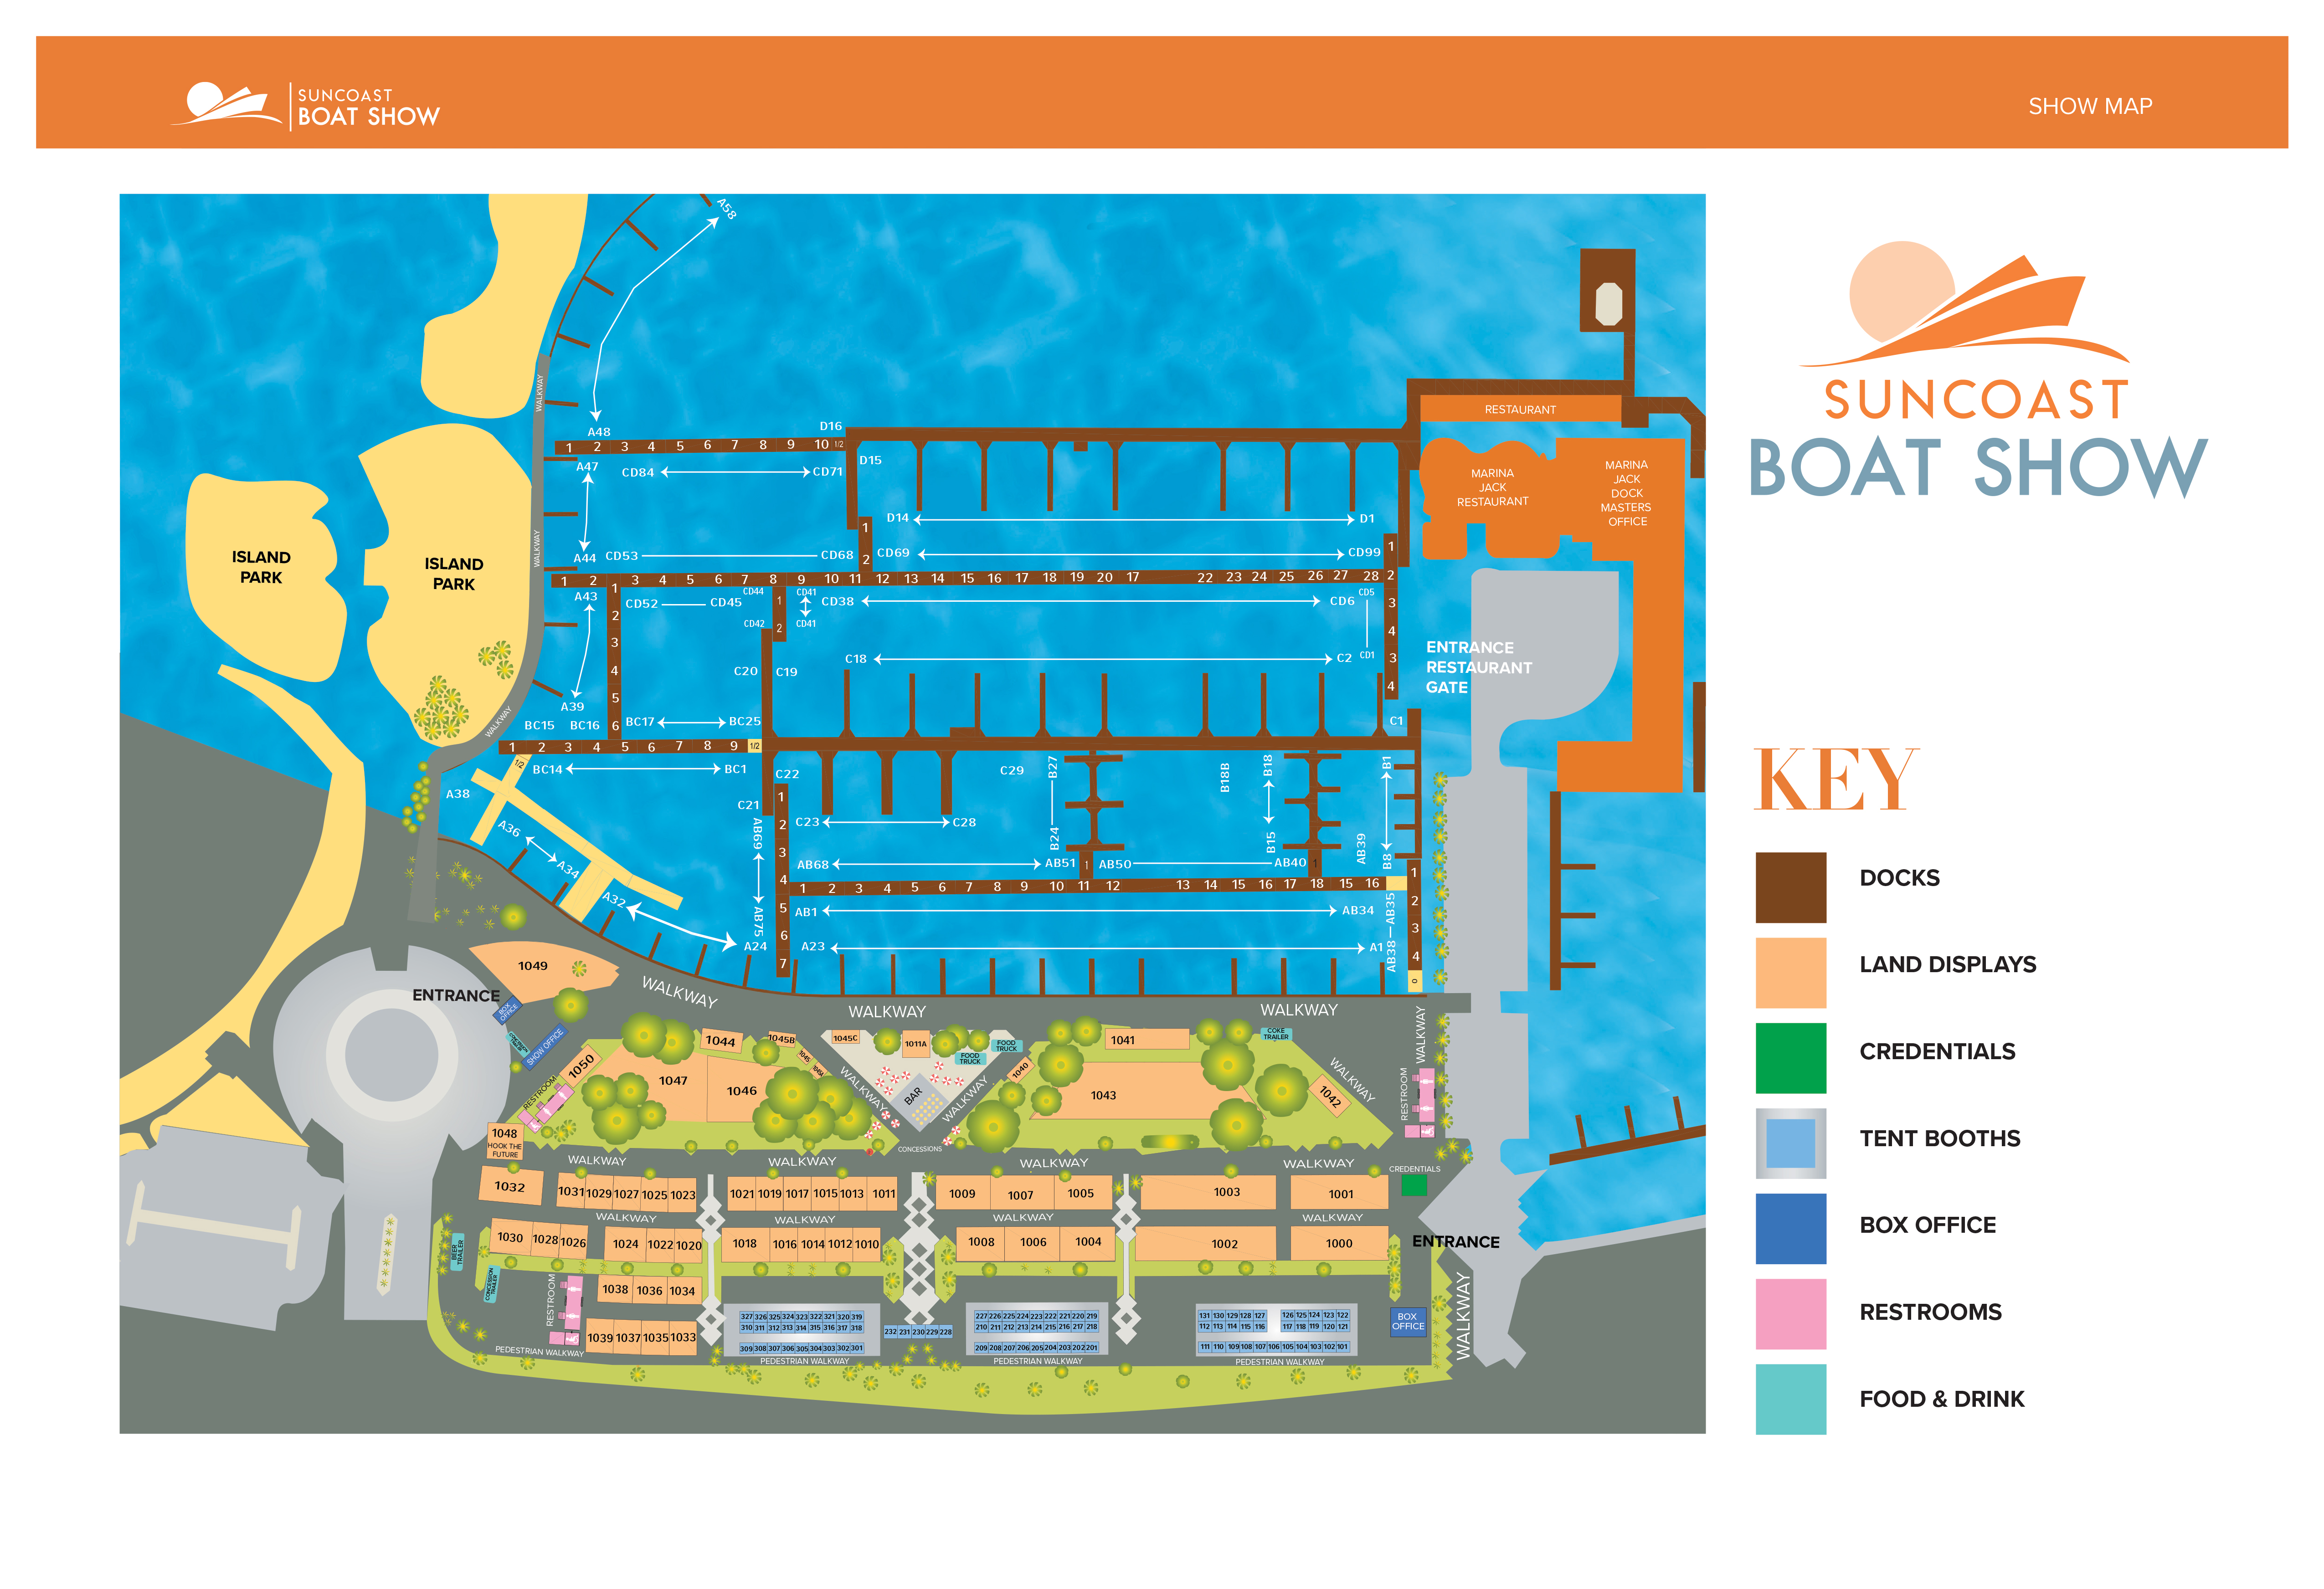 Suncoast Boat Show 2019 Map